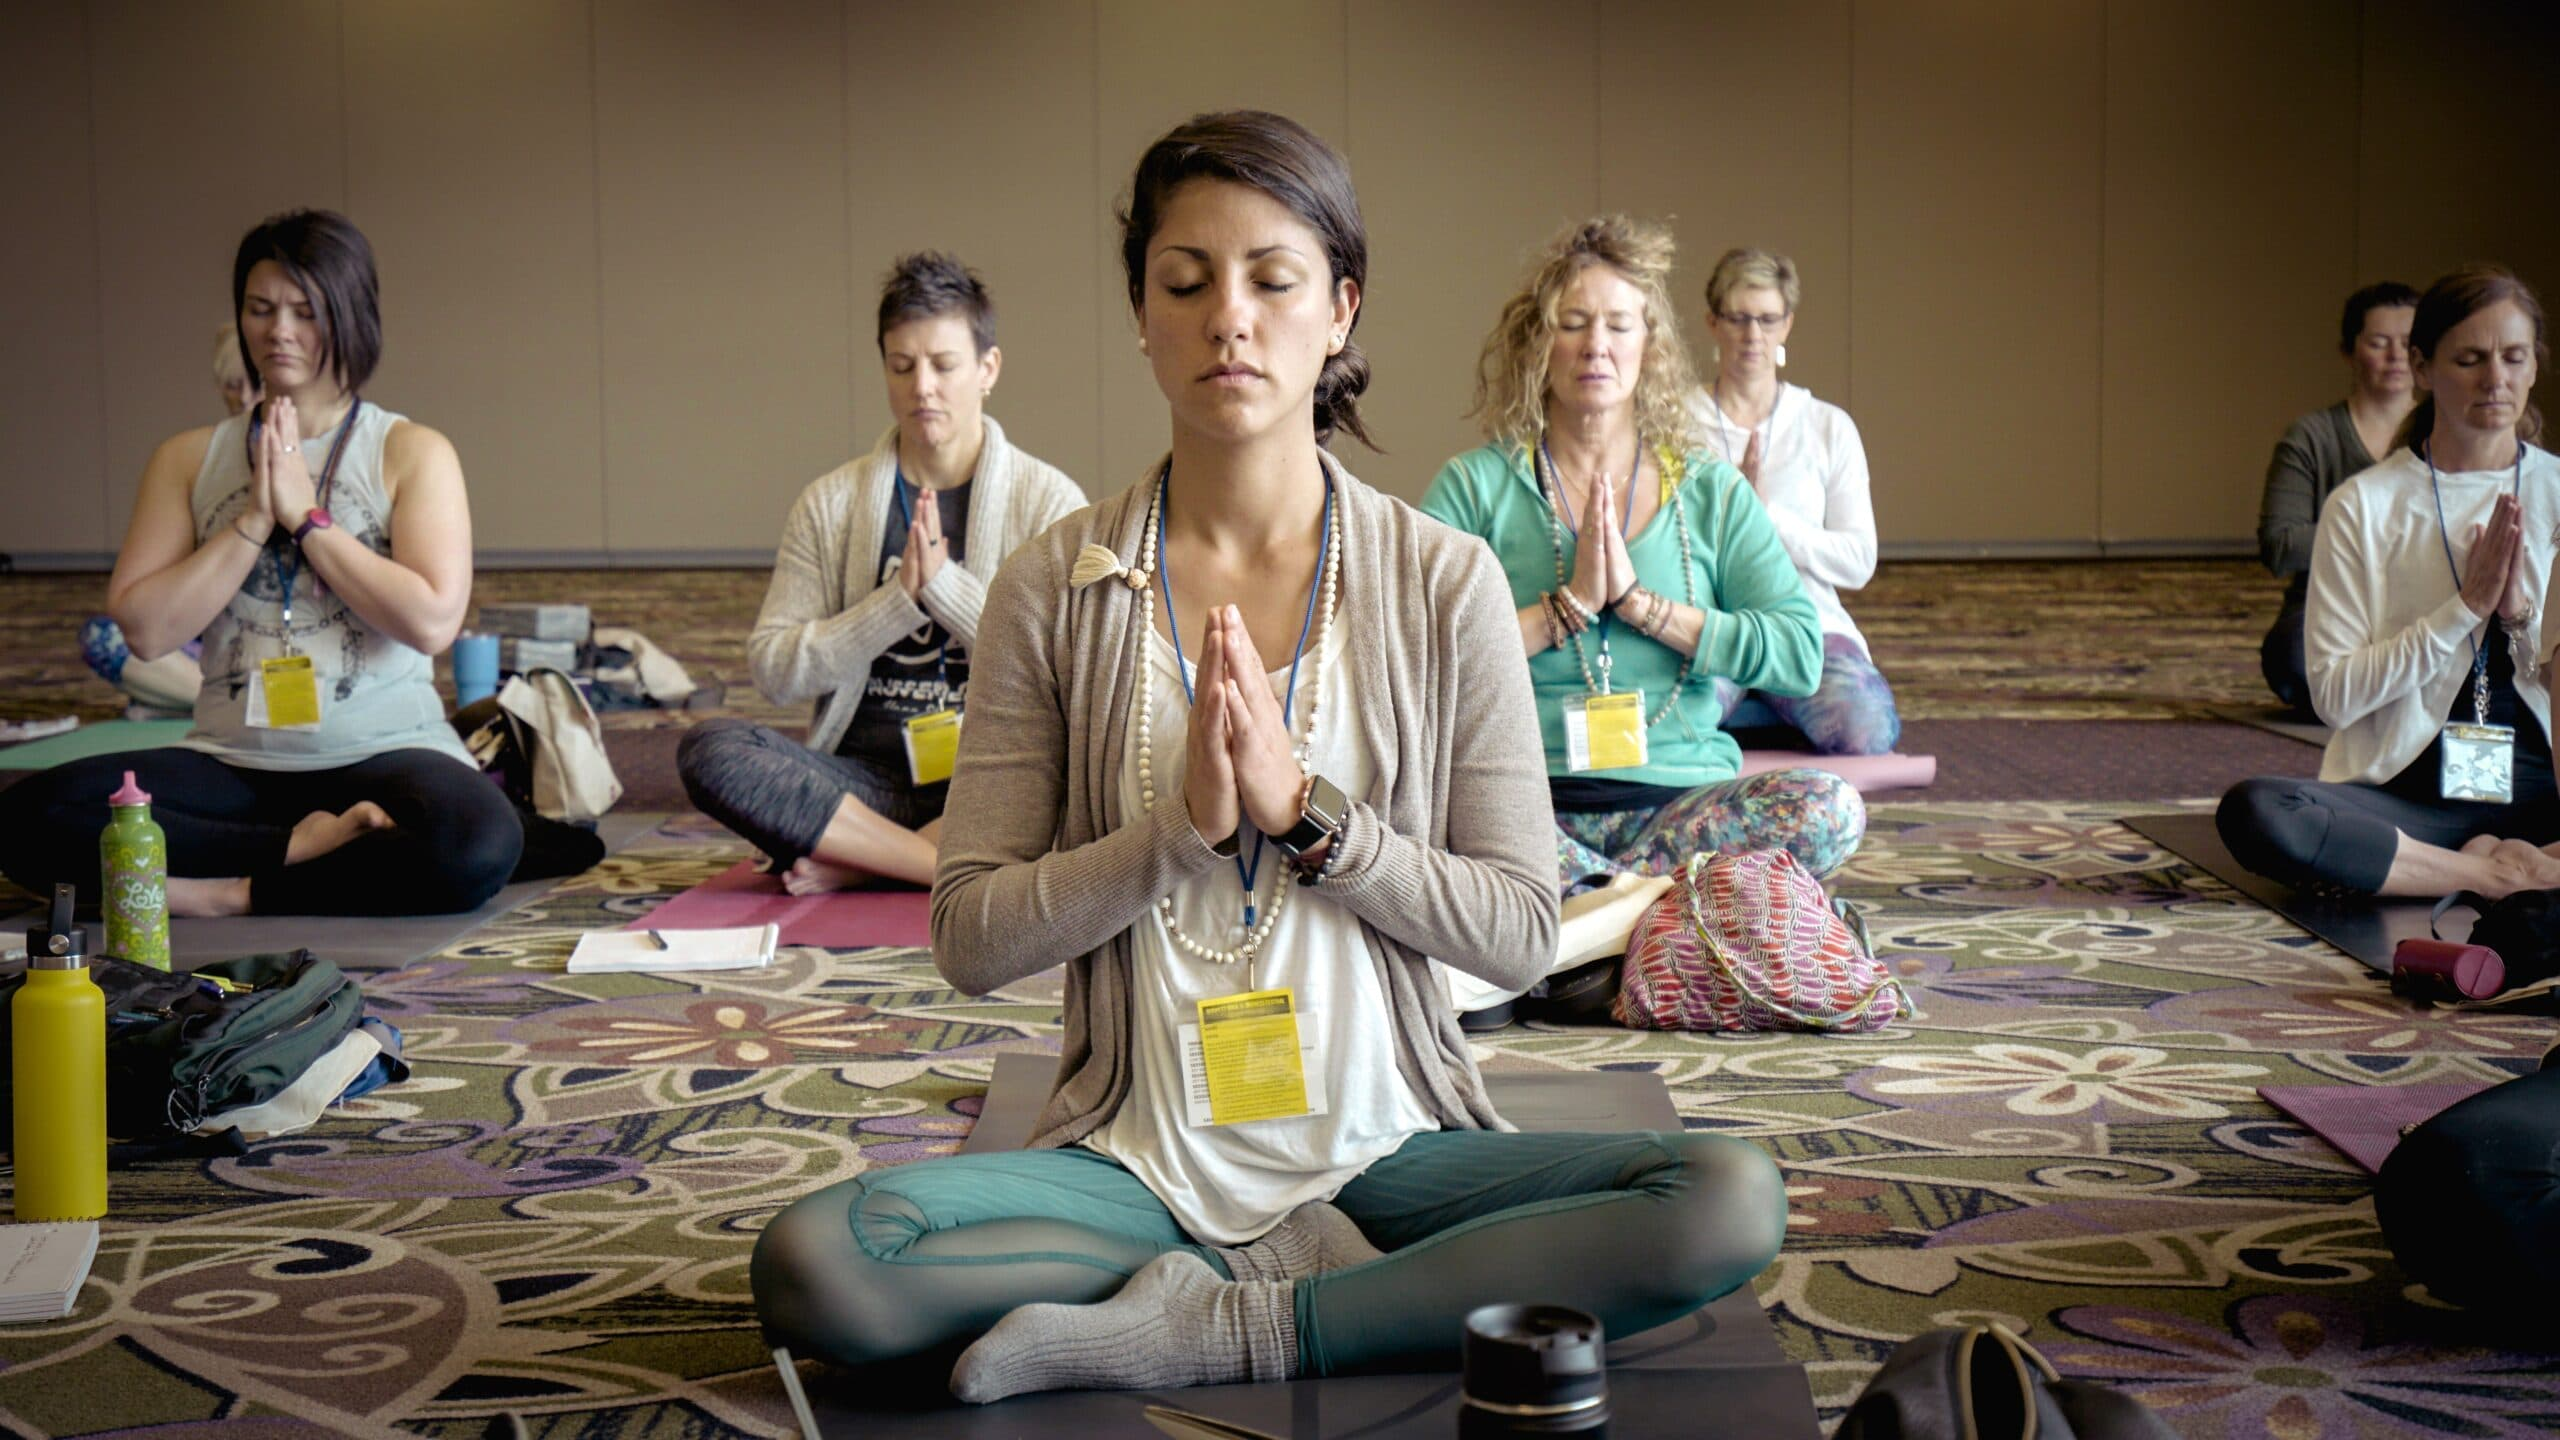 Portrays meditation in action